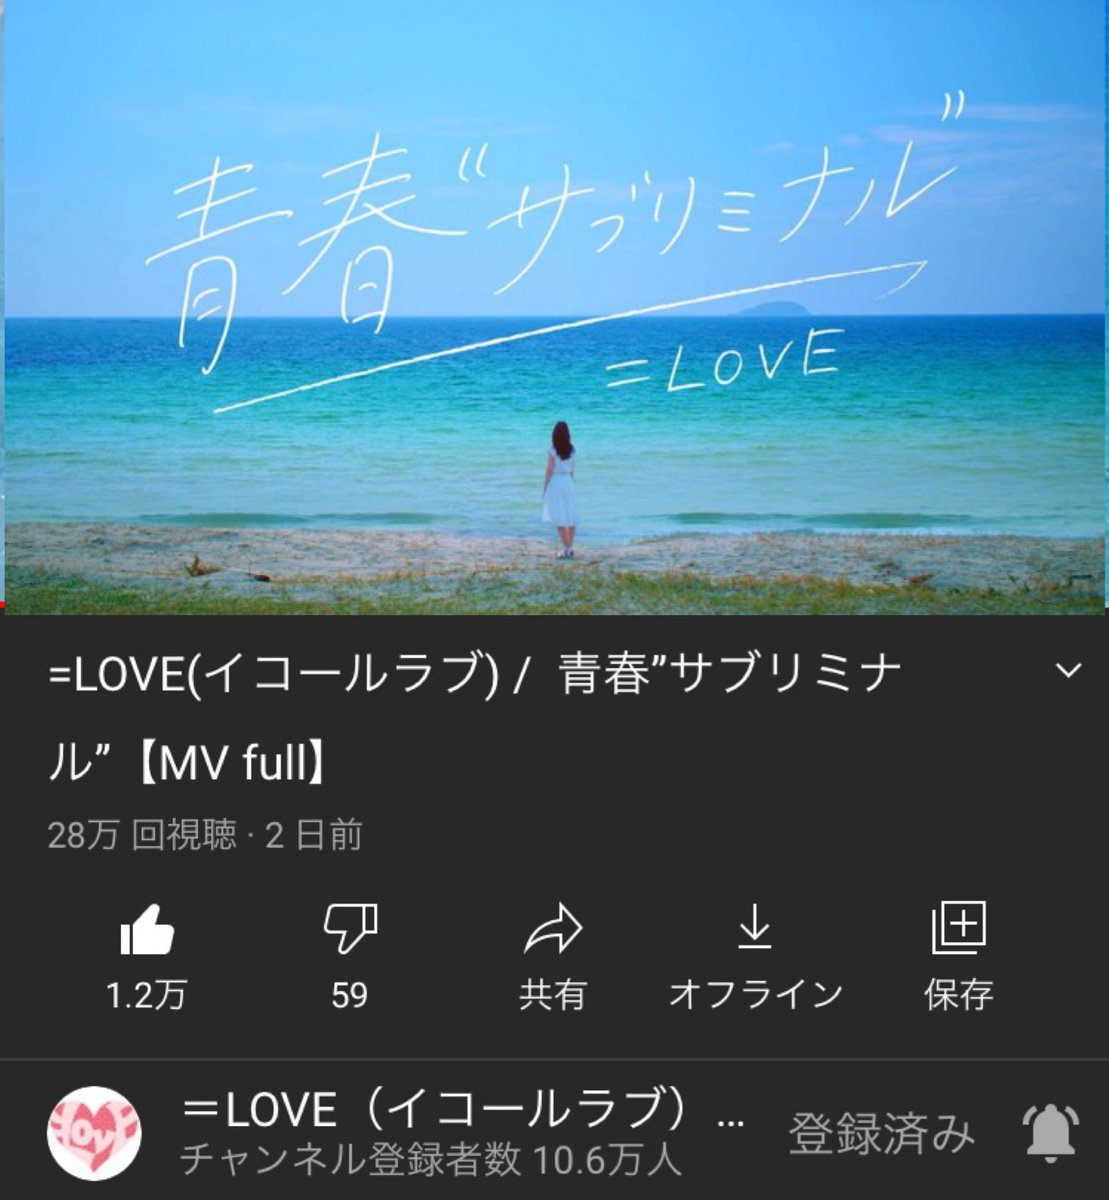 """The youtube video has over 0.28million views! =LOVE(Equal LOVE) 8th Single「Seishun""""Subliminal""""(Youth""""Subliminal"""")」Music video➡️ https://t.co/f9haSRdPff I want you to see Japan's beautiful scenery✨ #Japanese idol singer🇯🇵 #Produce(#lyrics)Rino… https://t.co/F1FmO32Gaf https://t.co/BHhOSJYV02"""